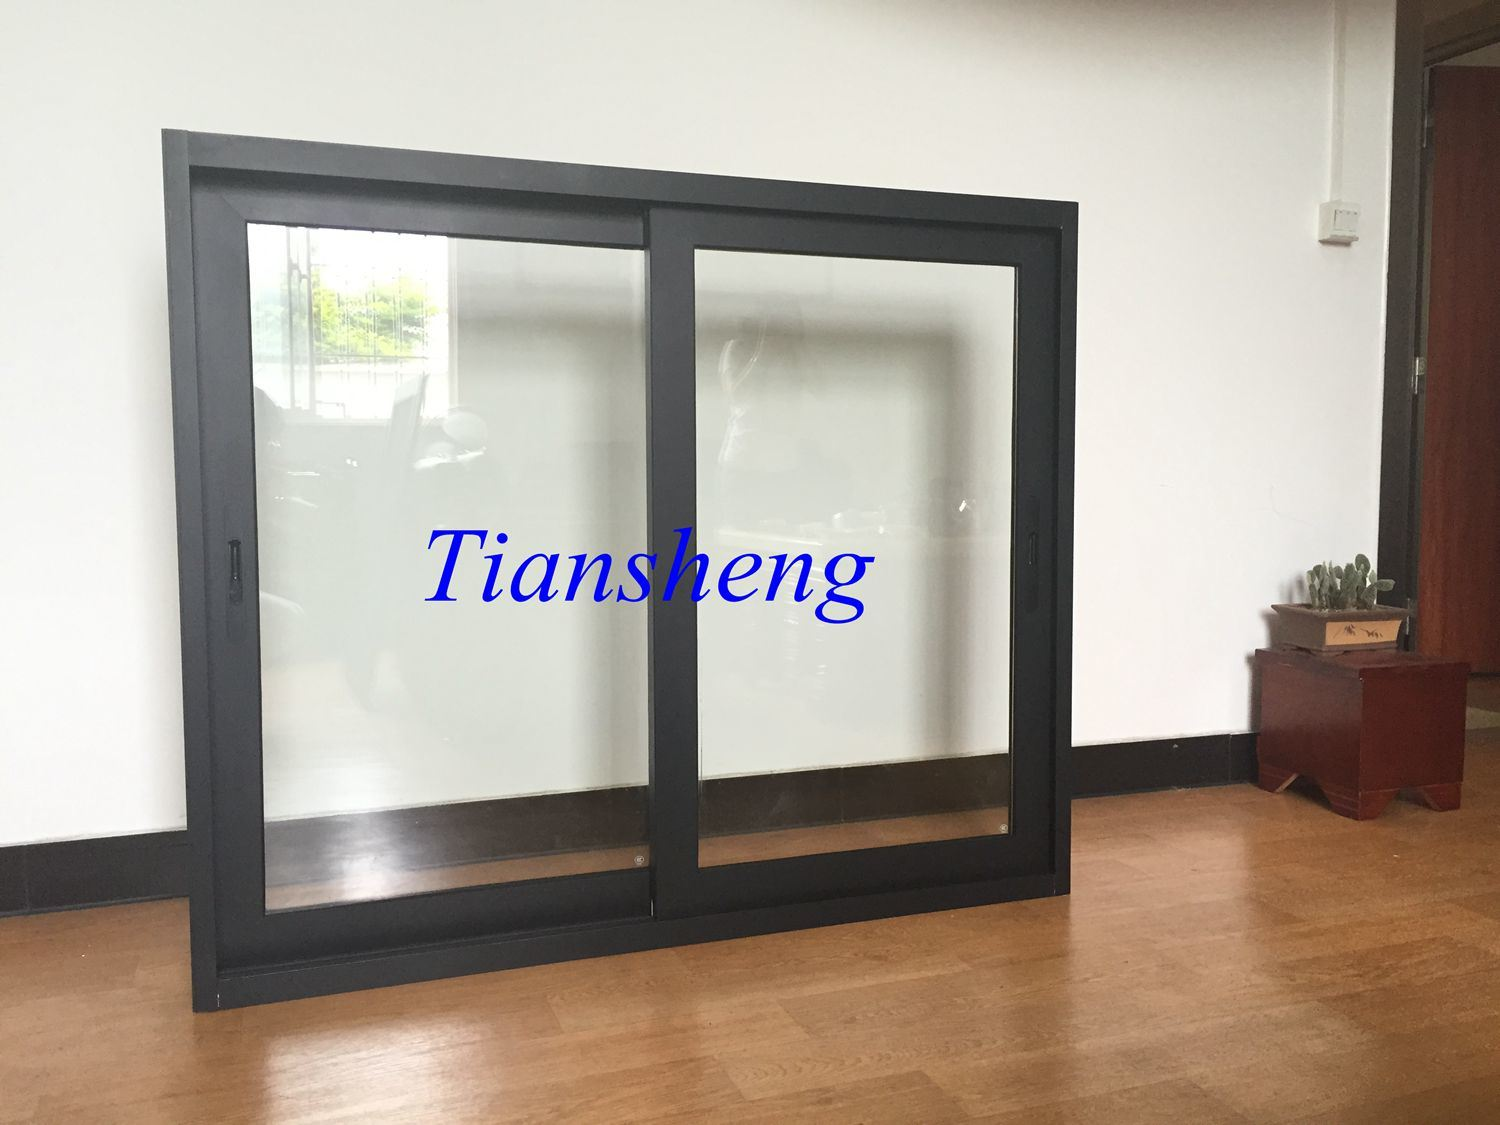 Australia Standard High Level 100f Series Aluminium Sliding Window Glass Window for Commercial and Residential Building